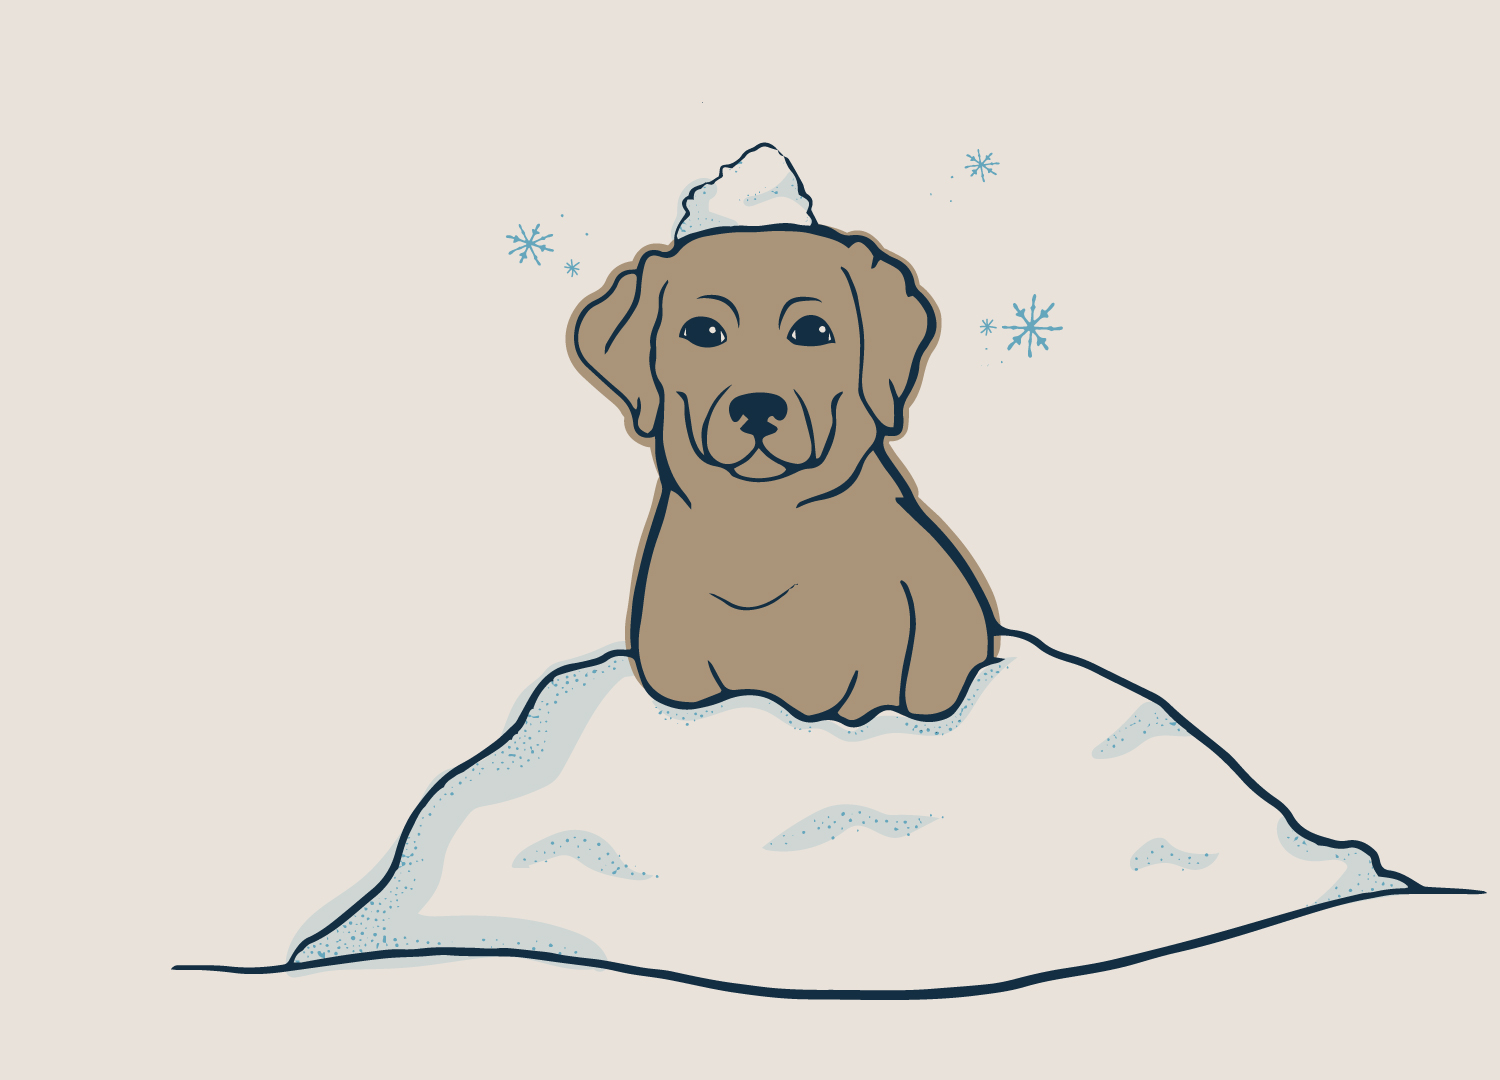 An illustration of a dog with snow on its head created for Grounds & Hounds Coffee.